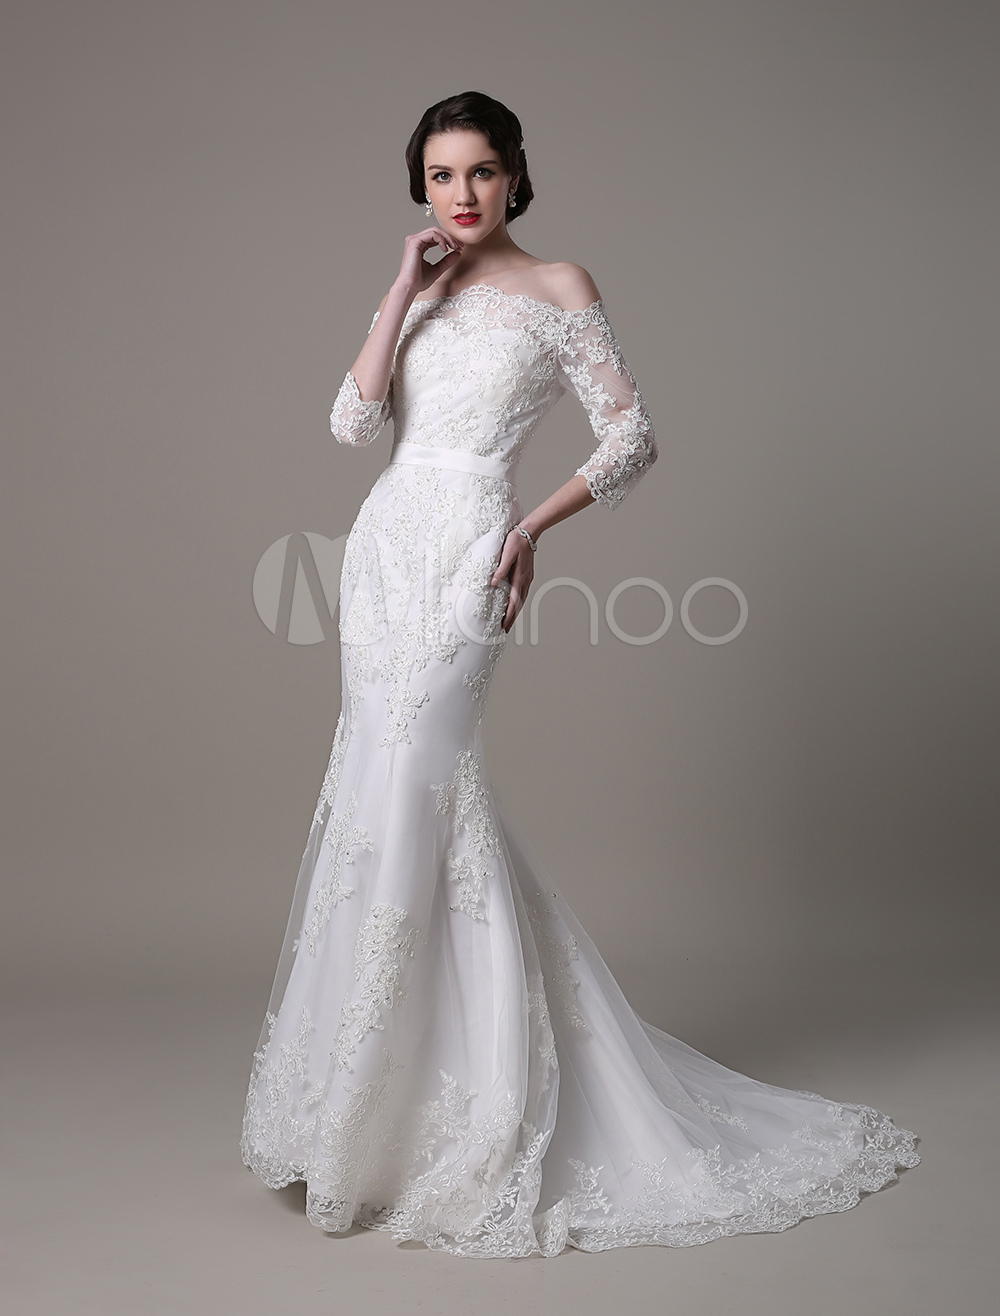 Vintage Lace Mermaid Wedding Dress With Off-the-Shoulder Neckline And Court Train Milanoo